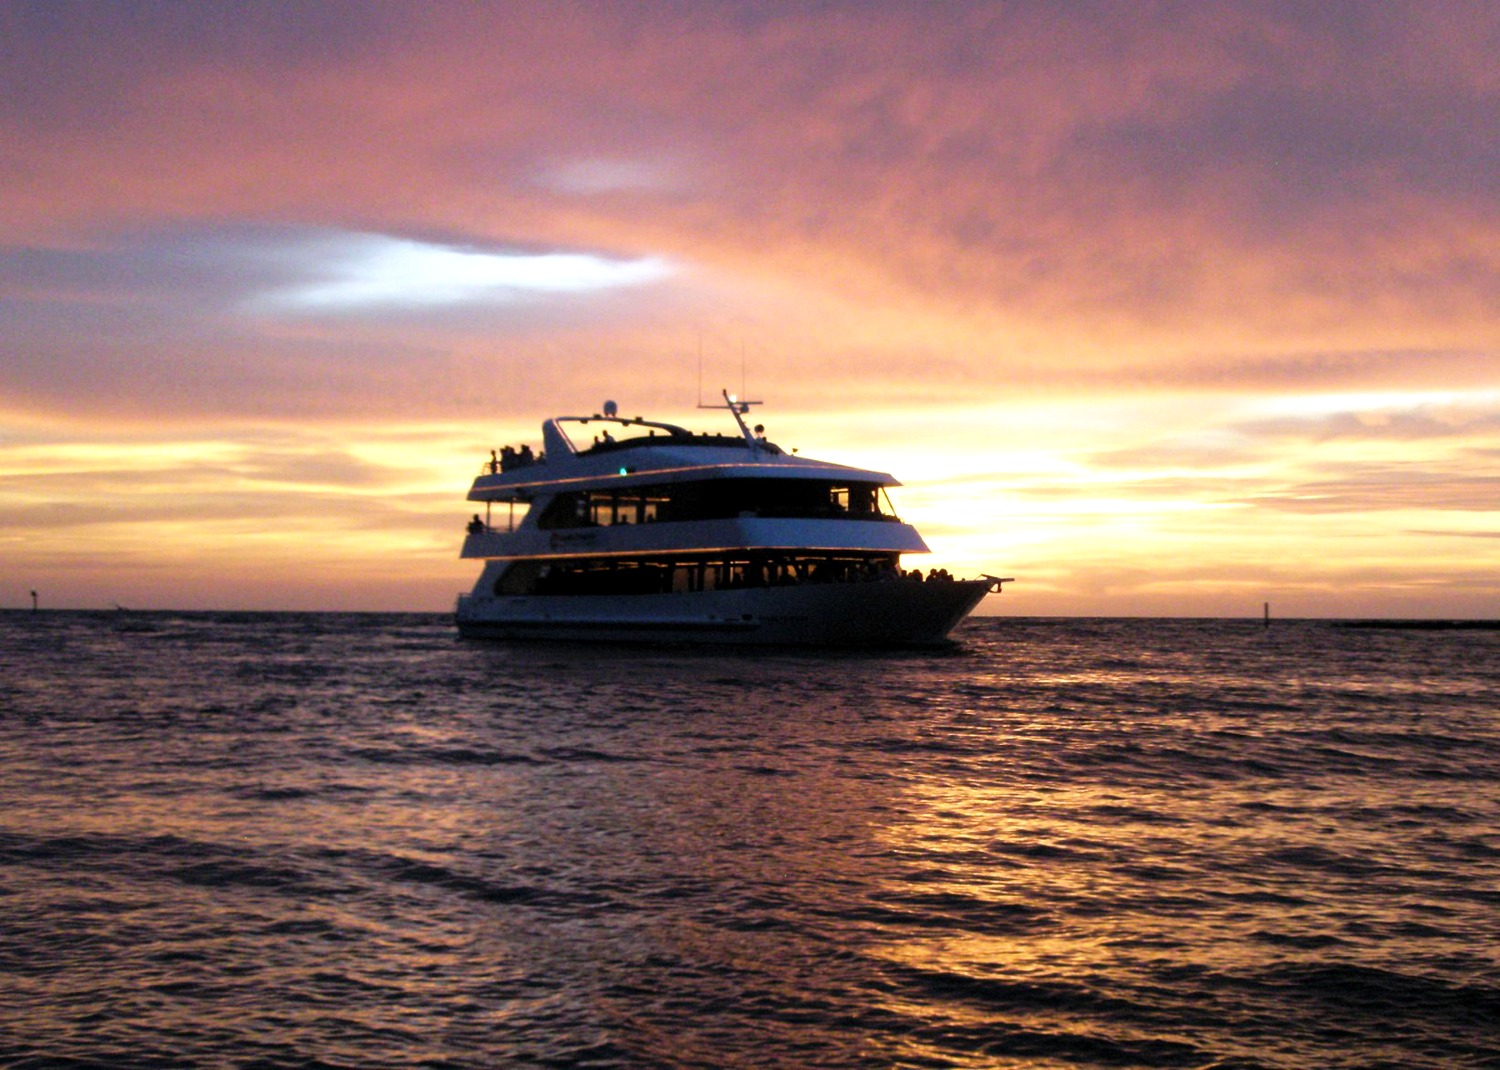 Unwind: Sunset Cruise